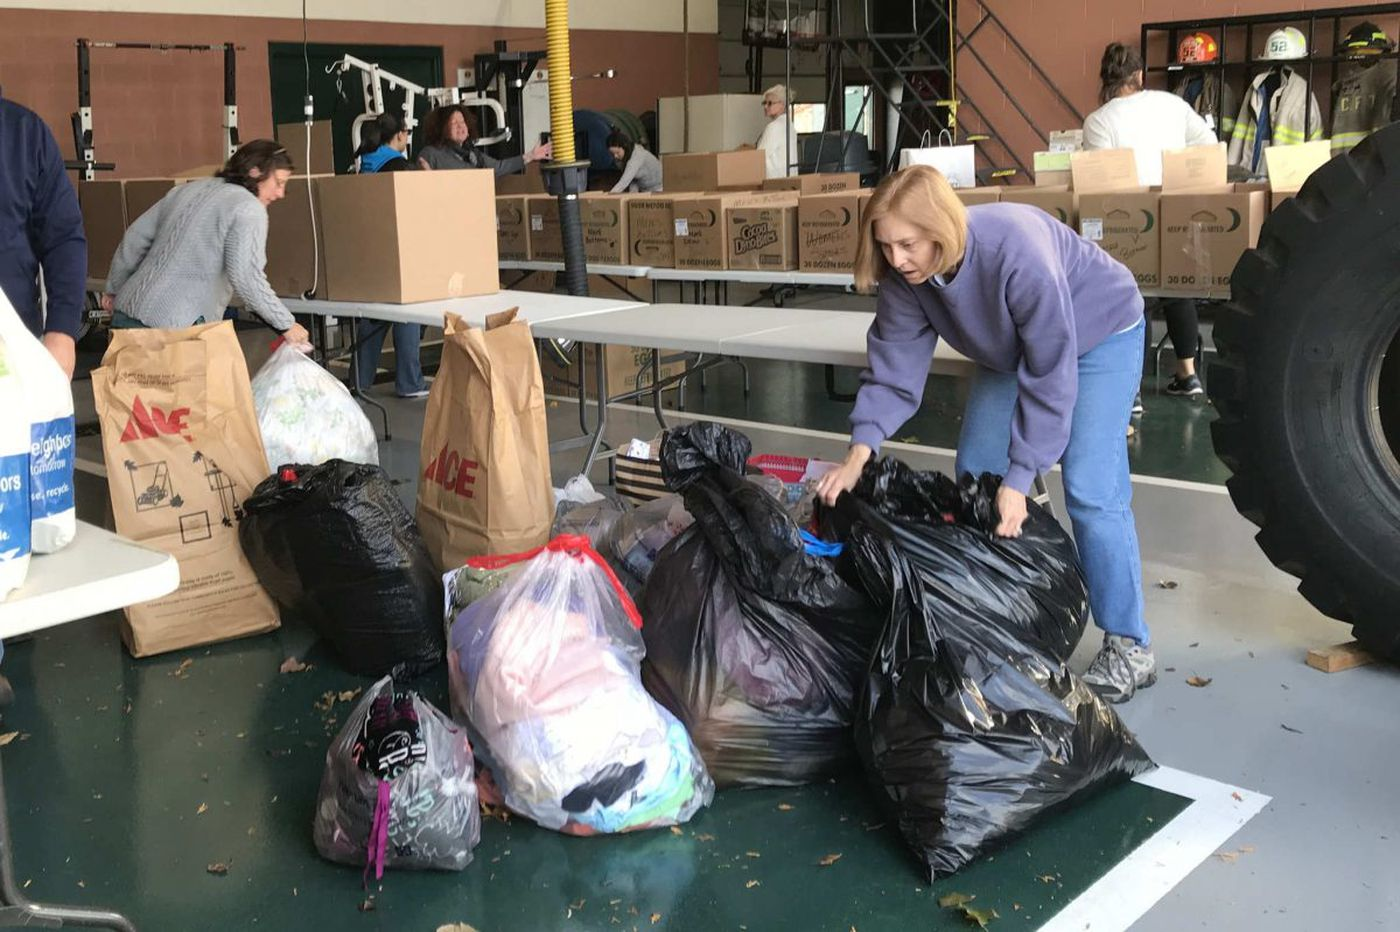 Canes, walkers, clothes: Donations overflow for Barclay Friends nursing home fire victims